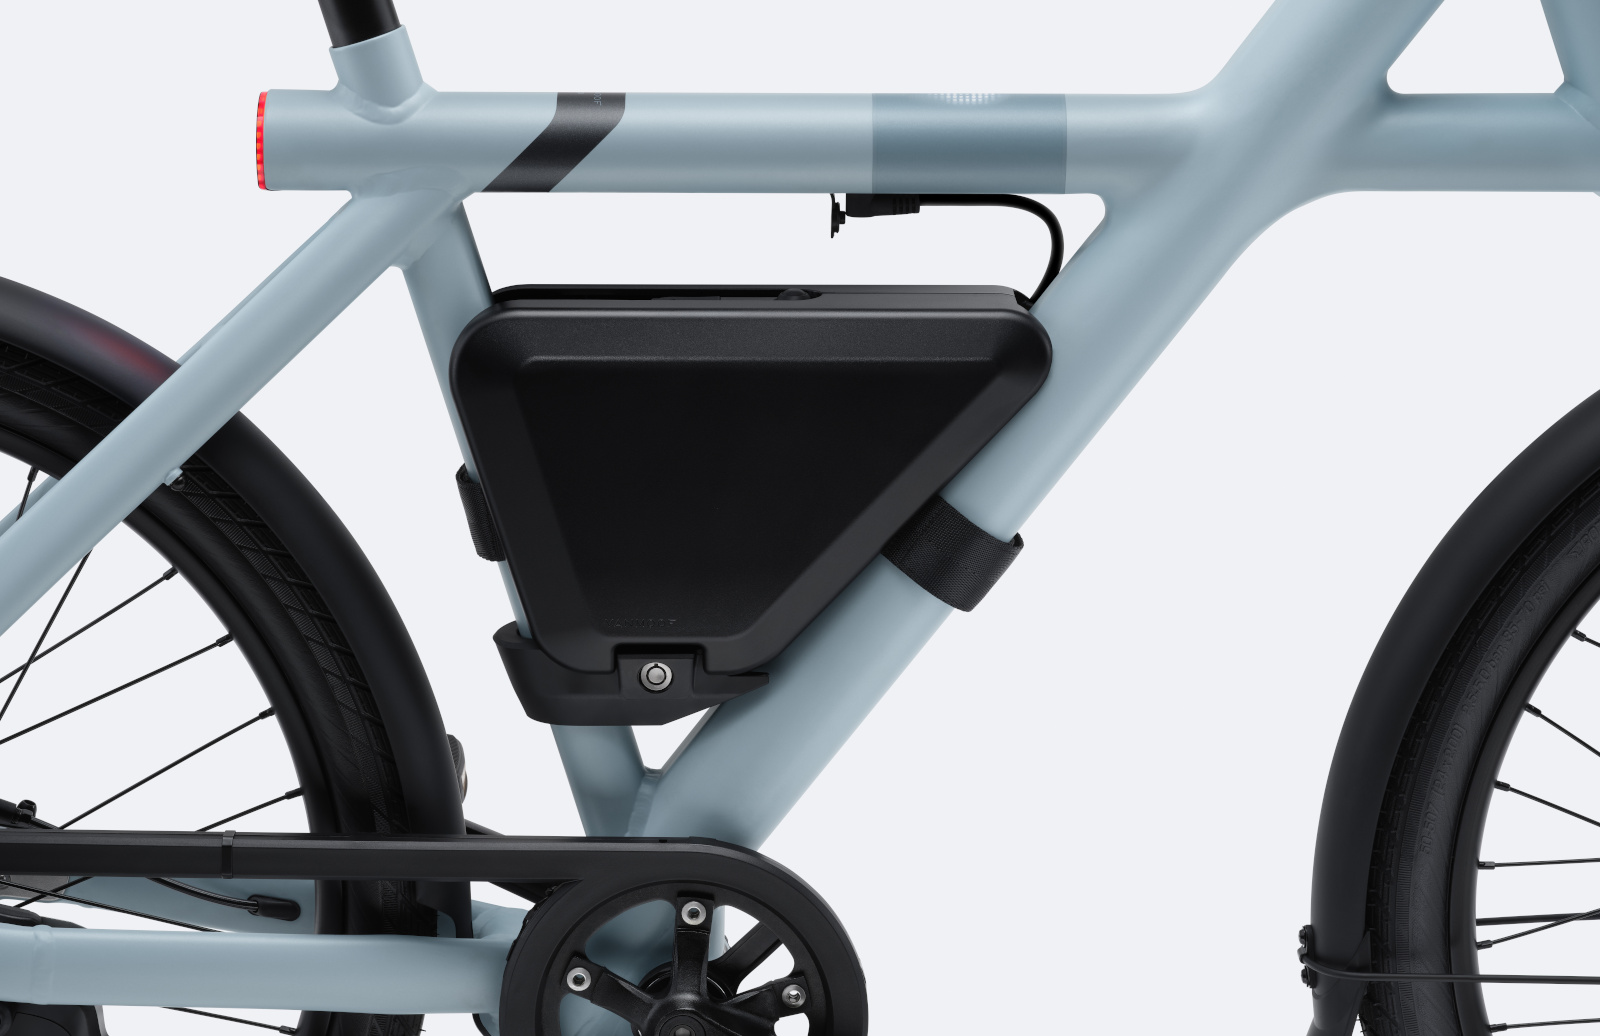 VanMoof's PowerBank can boost its e-bikes' range by up to 62 miles